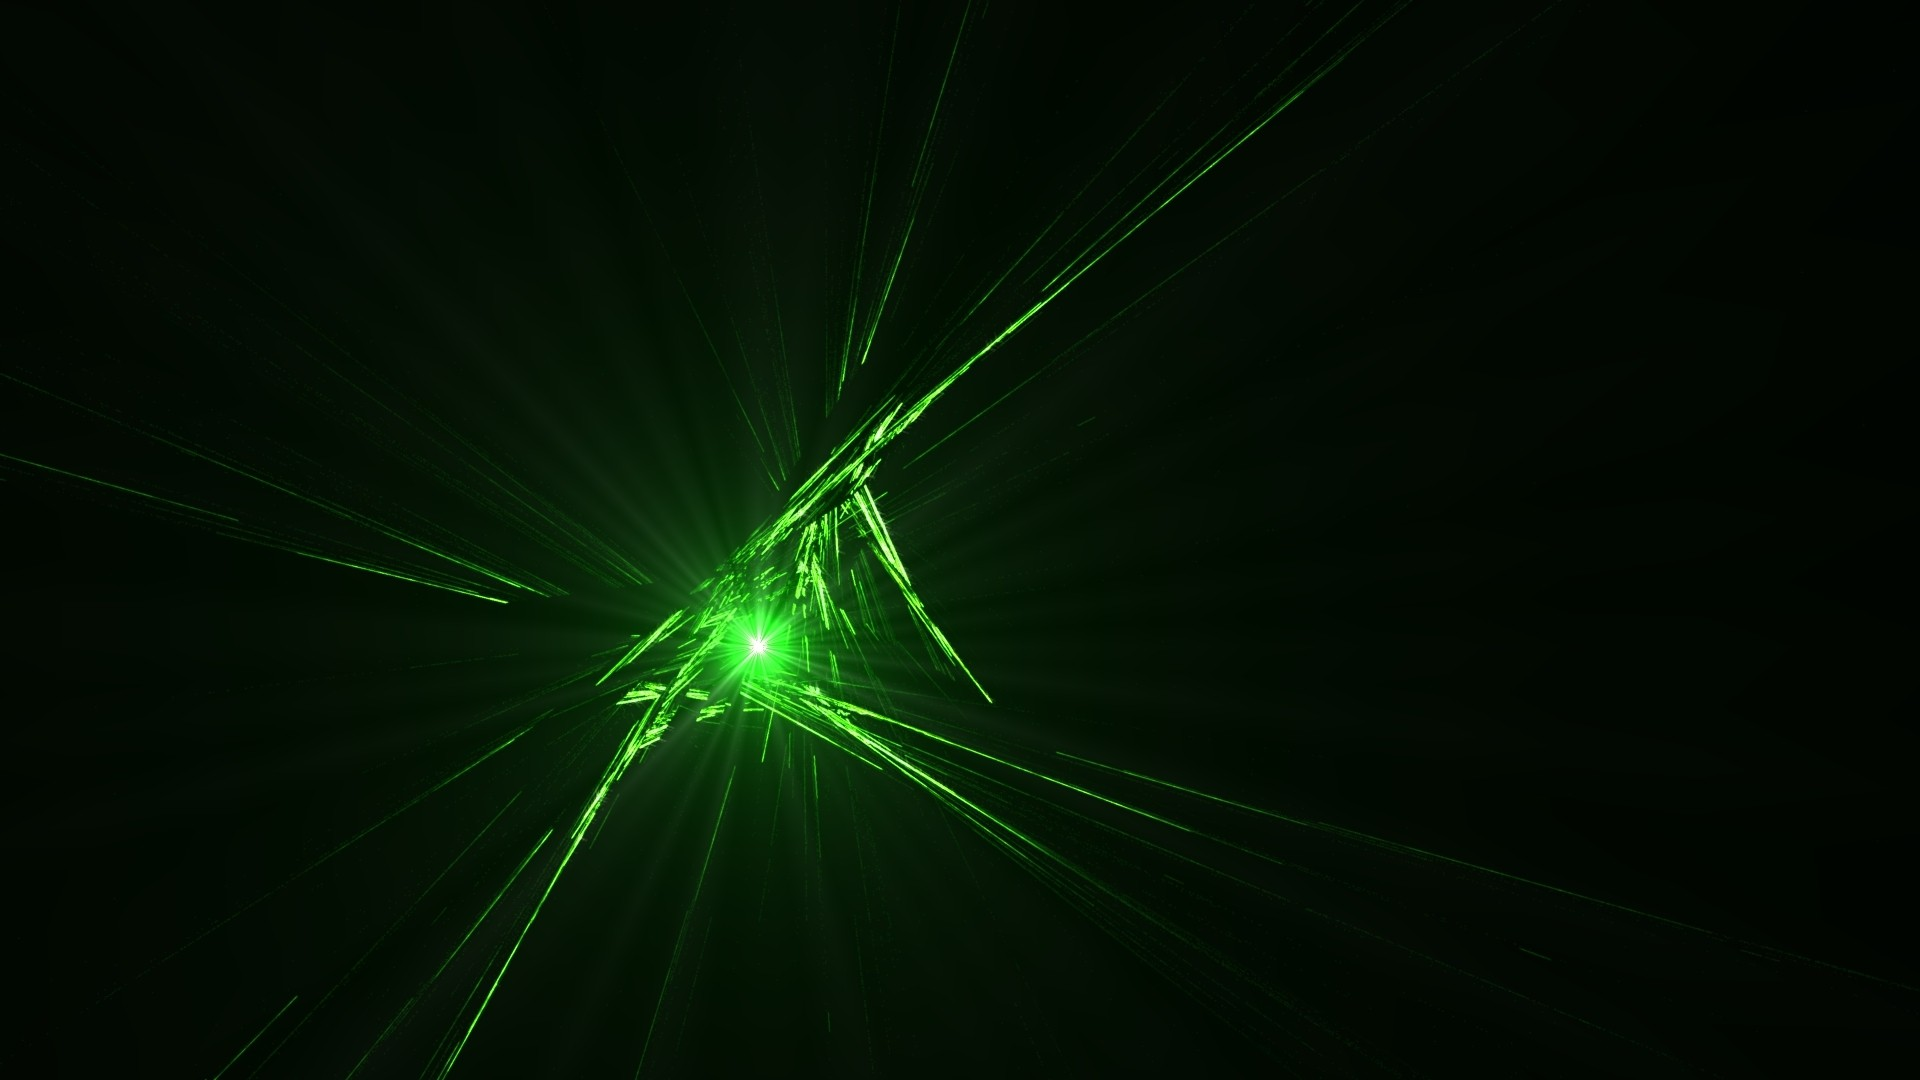 Spark Green Wallpaper Picture hd